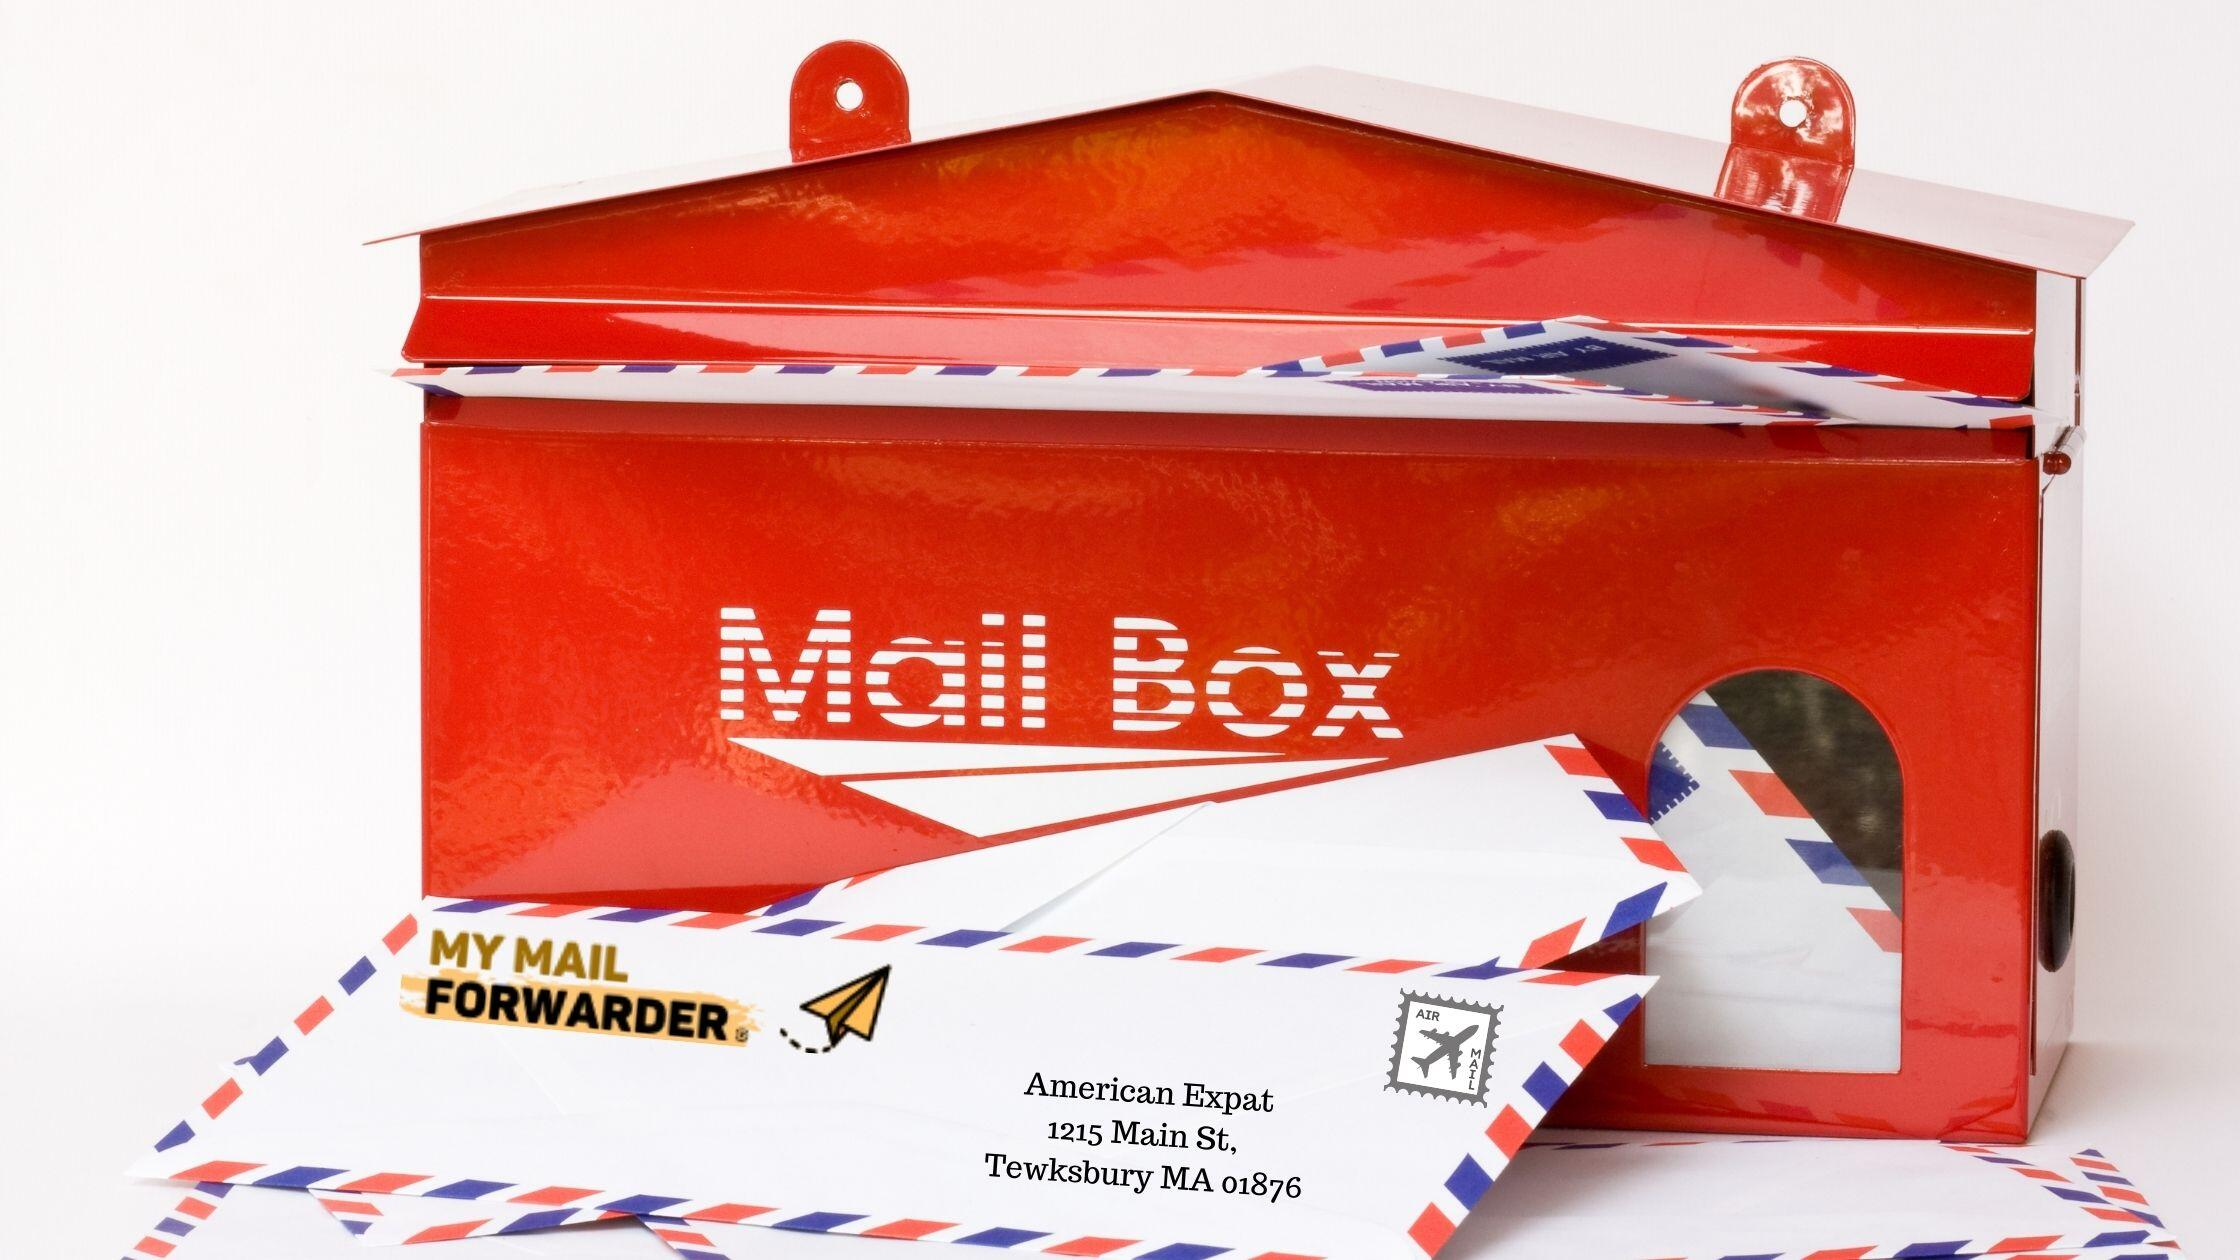 Mail Forwarding Service For American Expats